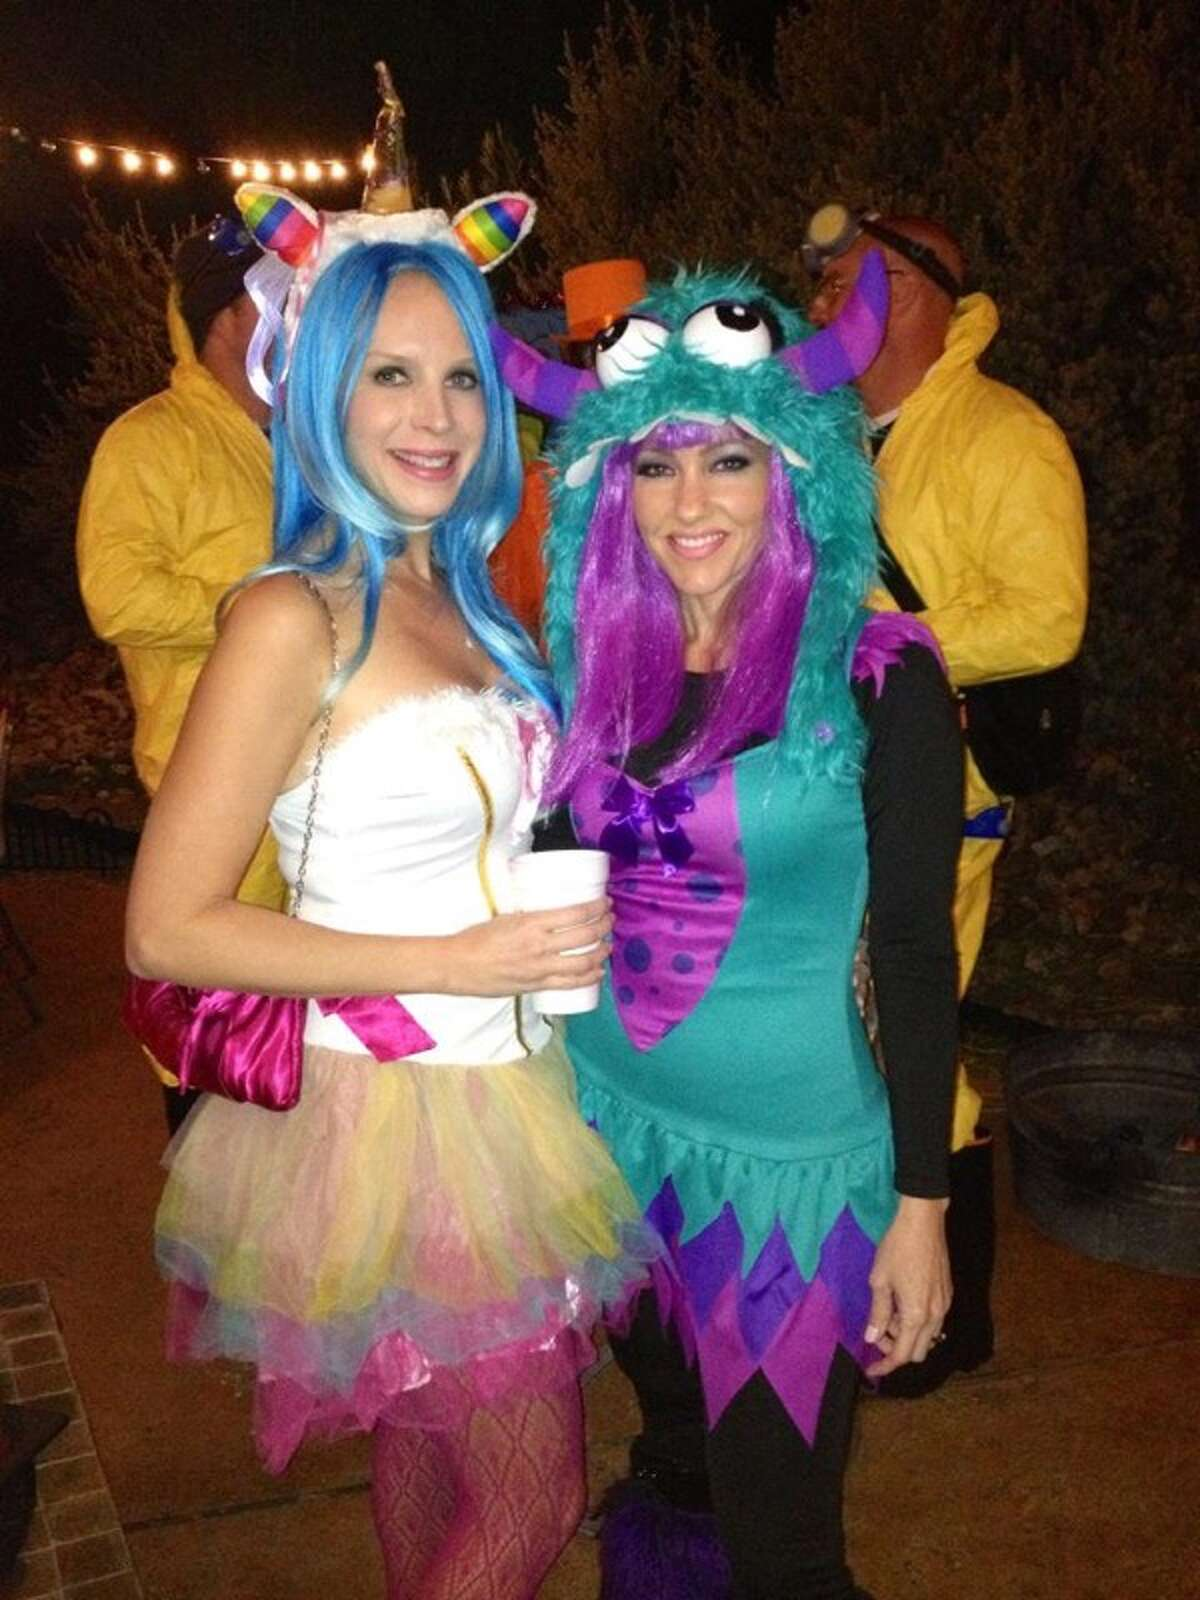 WOAI anchorwoman Delaine Mathieu (right) would fit right in on Sesame Street in this bright, fuzzy Halloween concoction. Her pal (left) went as a unicorn.